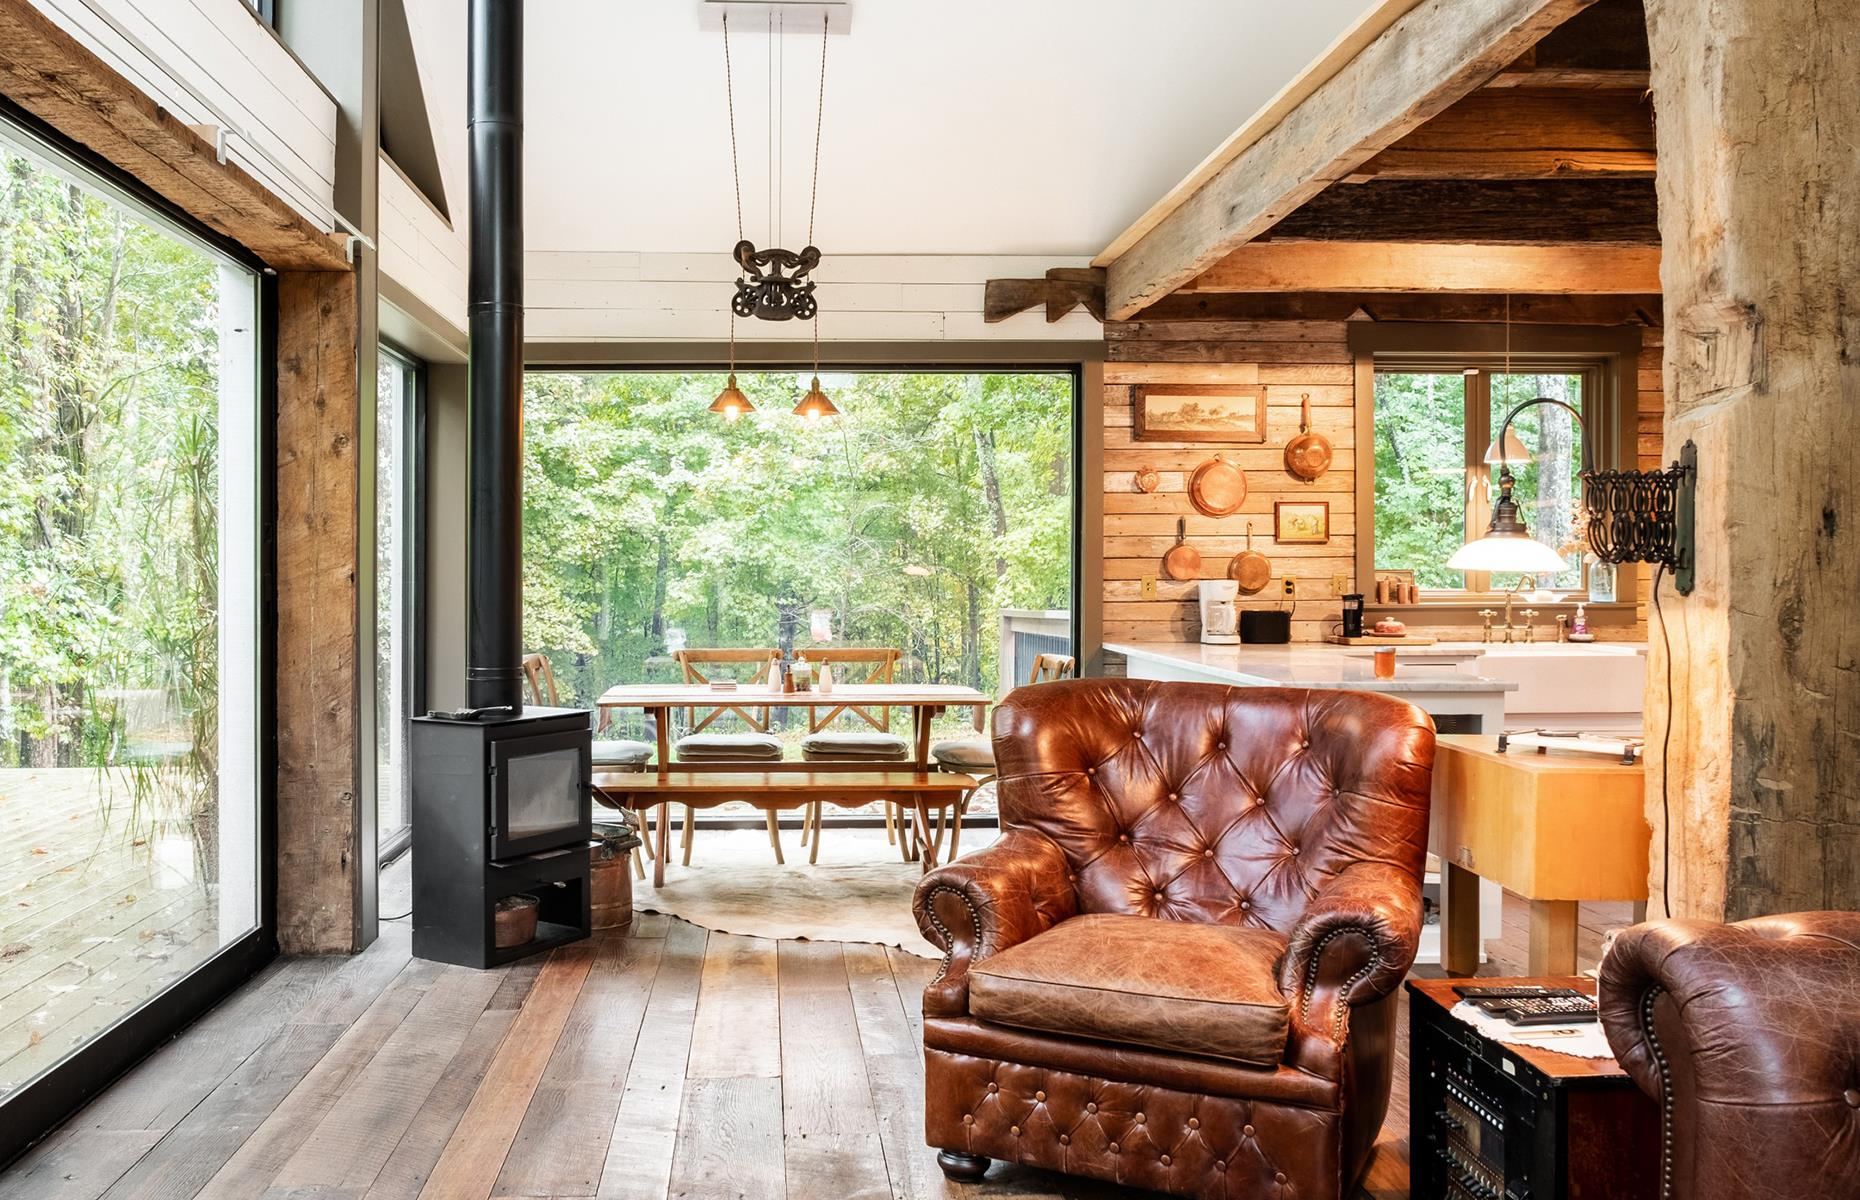 Slide 44 of 52: Made from recycled materials, this cozy cabin near Nashville is the ultimate secluded getaway. Hugged by the surrounding forest, the open-plan home has an attractive vintage feel to it. Thanks to the floor-to-ceiling picture windows, you can drink in the area's natural beauty from the comfort of an armchair. Check out America's most remote Airbnbs here.